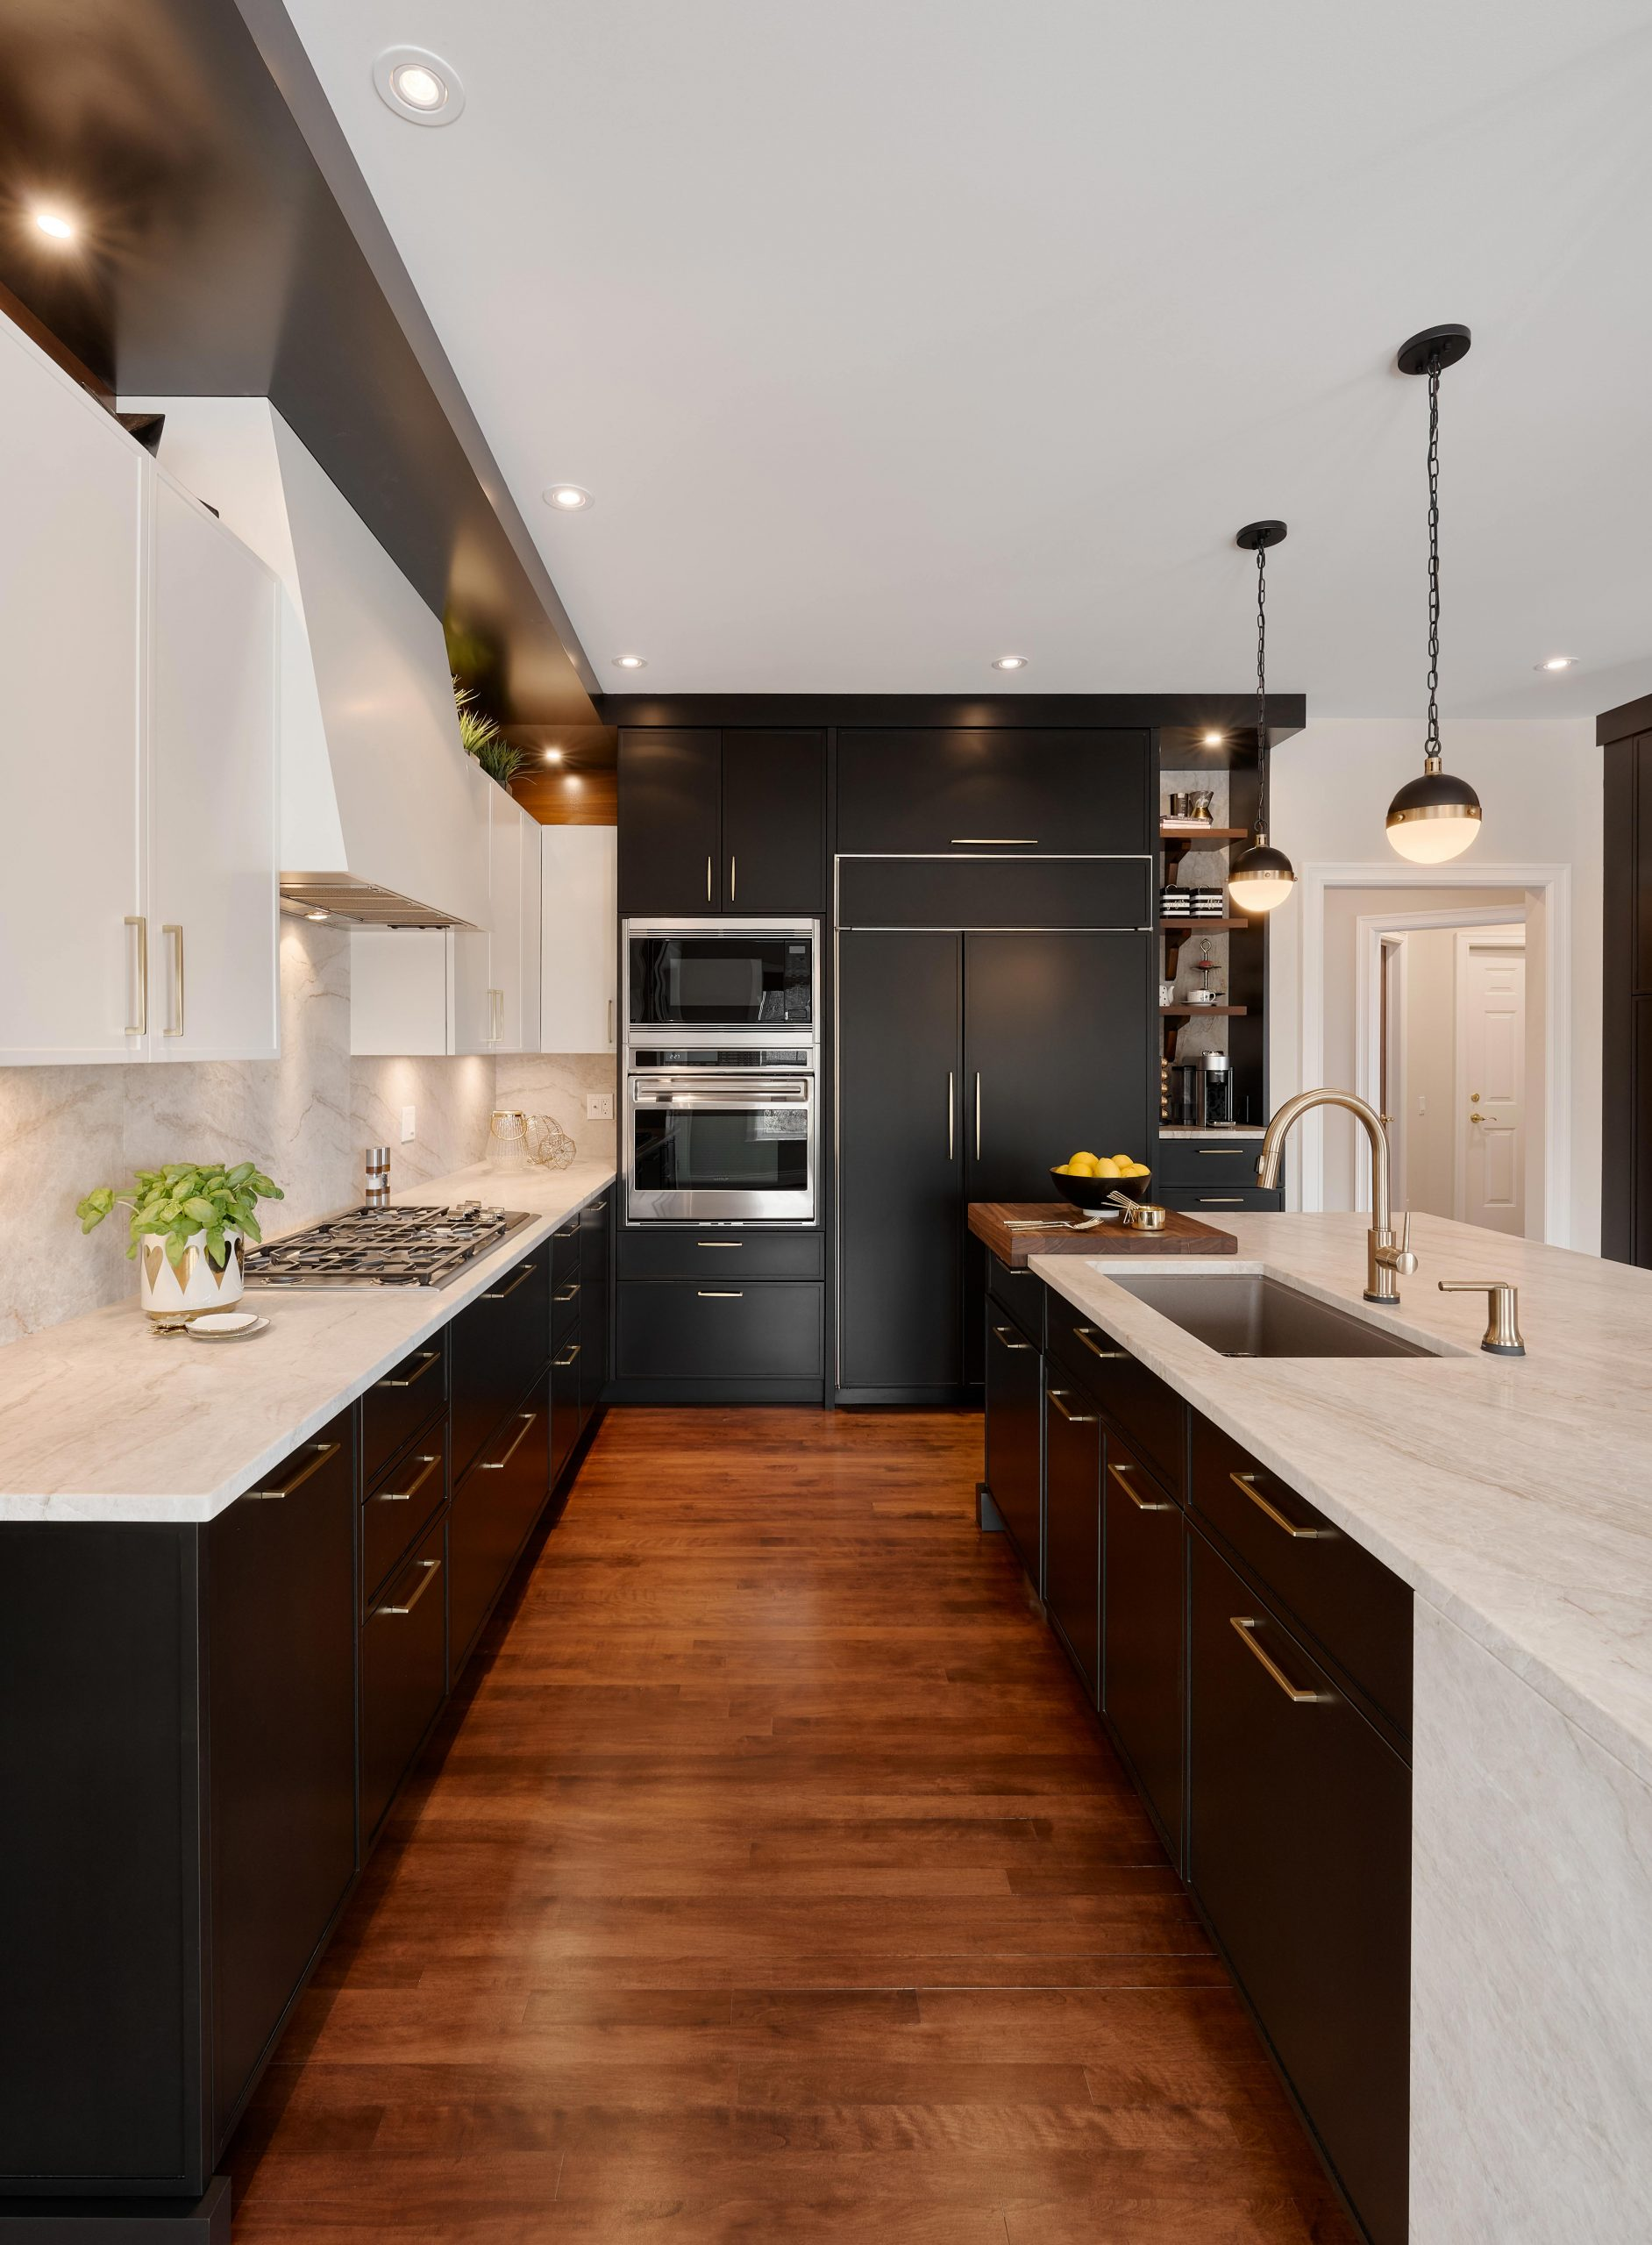 Elmwood Wood Cabinets Kitchen - Candide kitchen project - kitchen and island view